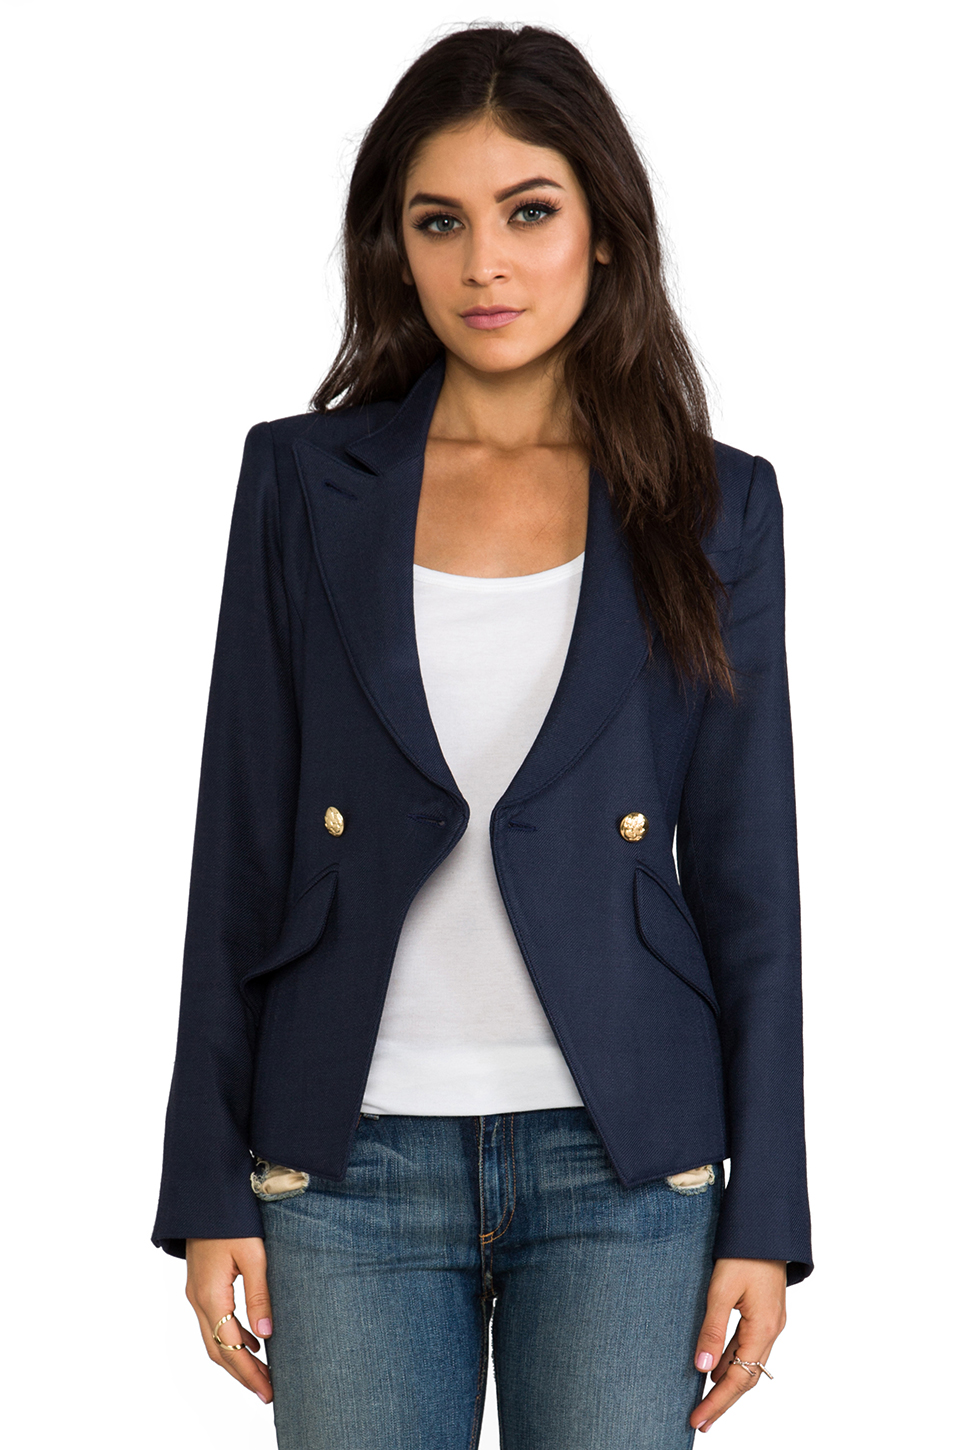 Smythe Crossover Blazer in Navy at Revolve Clothing